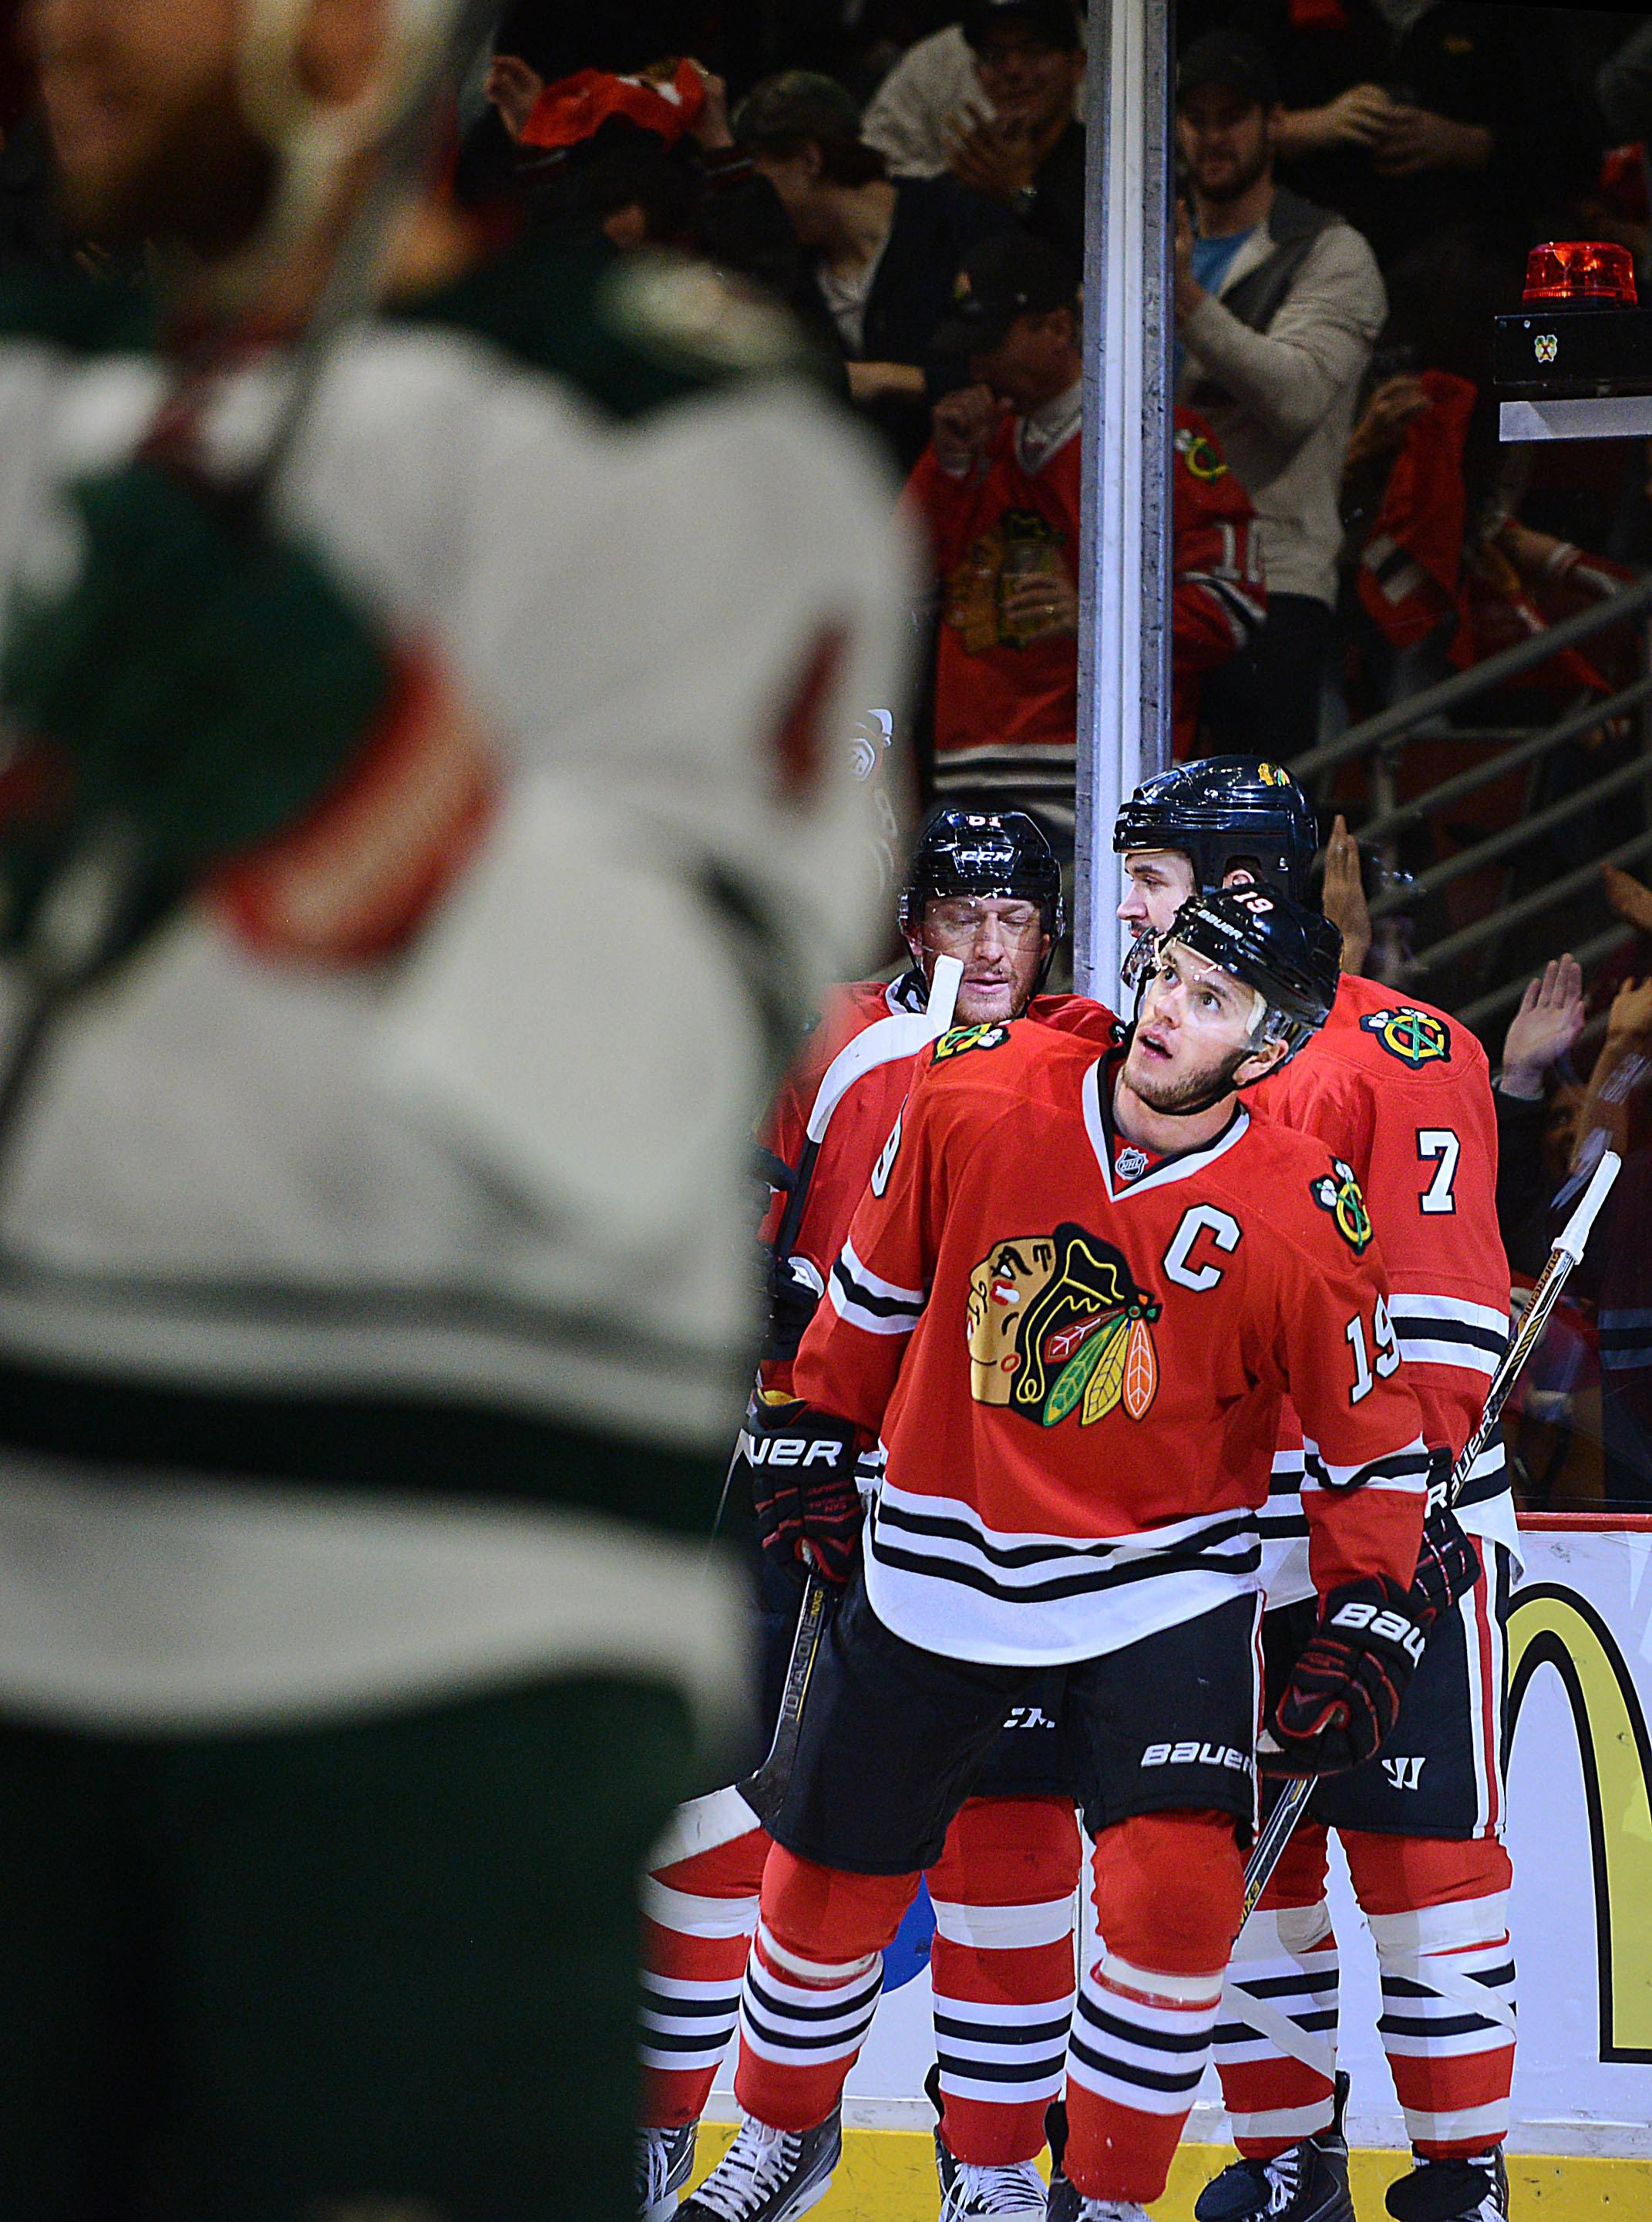 Chicago Blackhawks center Jonathan Toews looks toward the scoreboard after his goal against the Minnesota Wild.